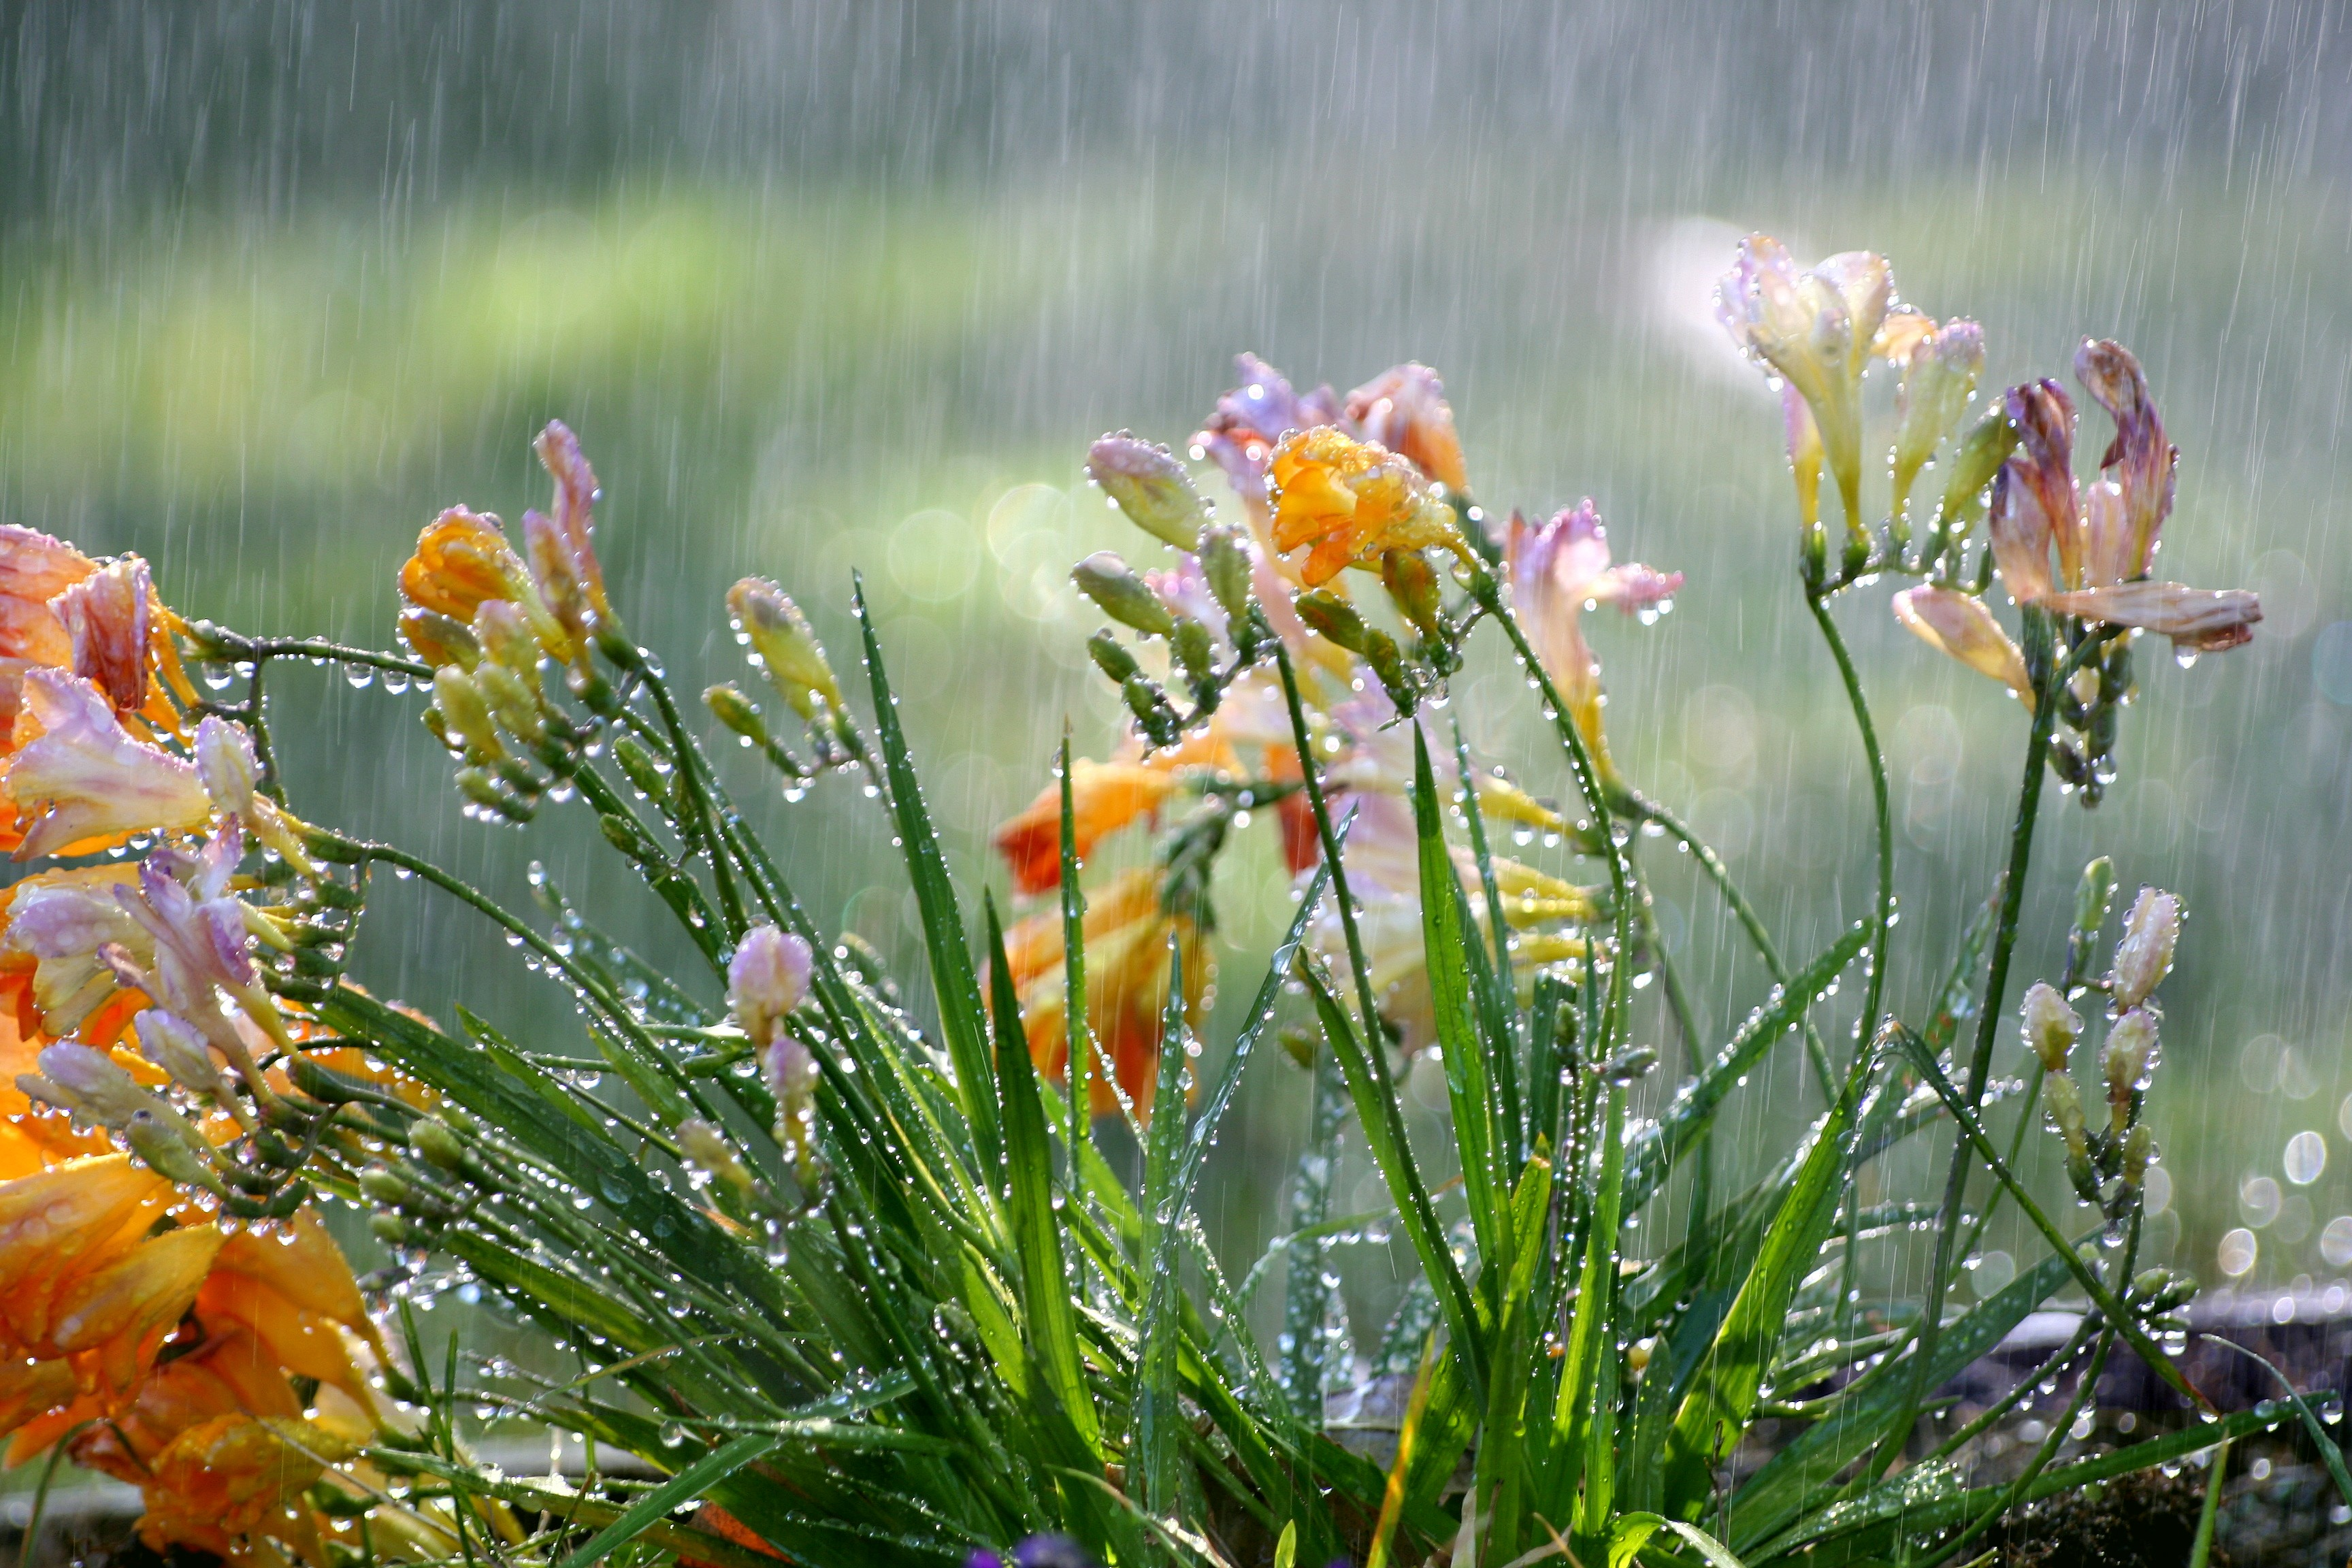 Spring Rain And Flowers (#2319987) - HD Wallpaper & Backgrounds ...